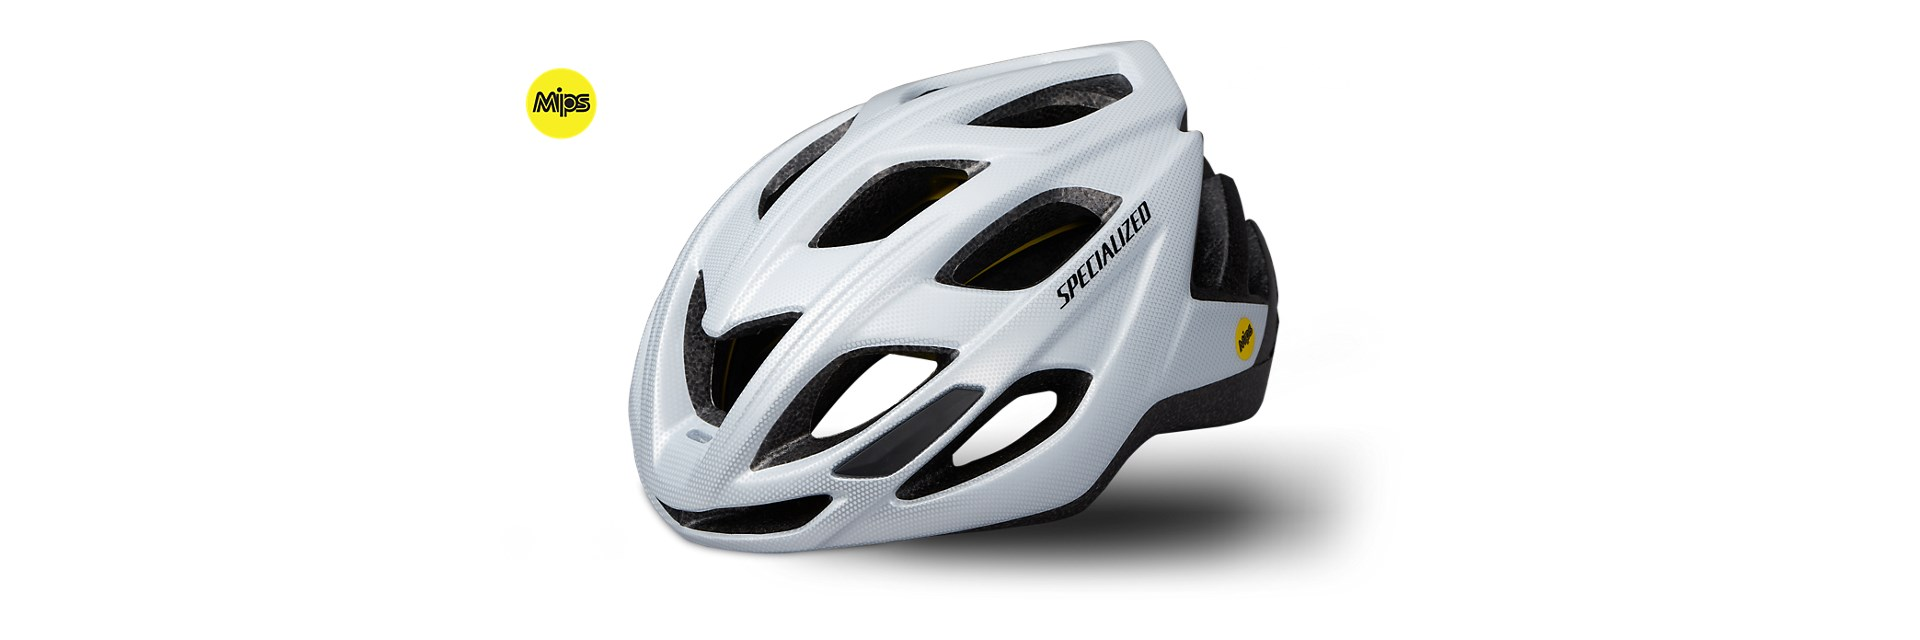 ae092100622 2019 Specialized Chamonix MIPS Cycling Helmet in White. 0 (Be the first to  add a review!)